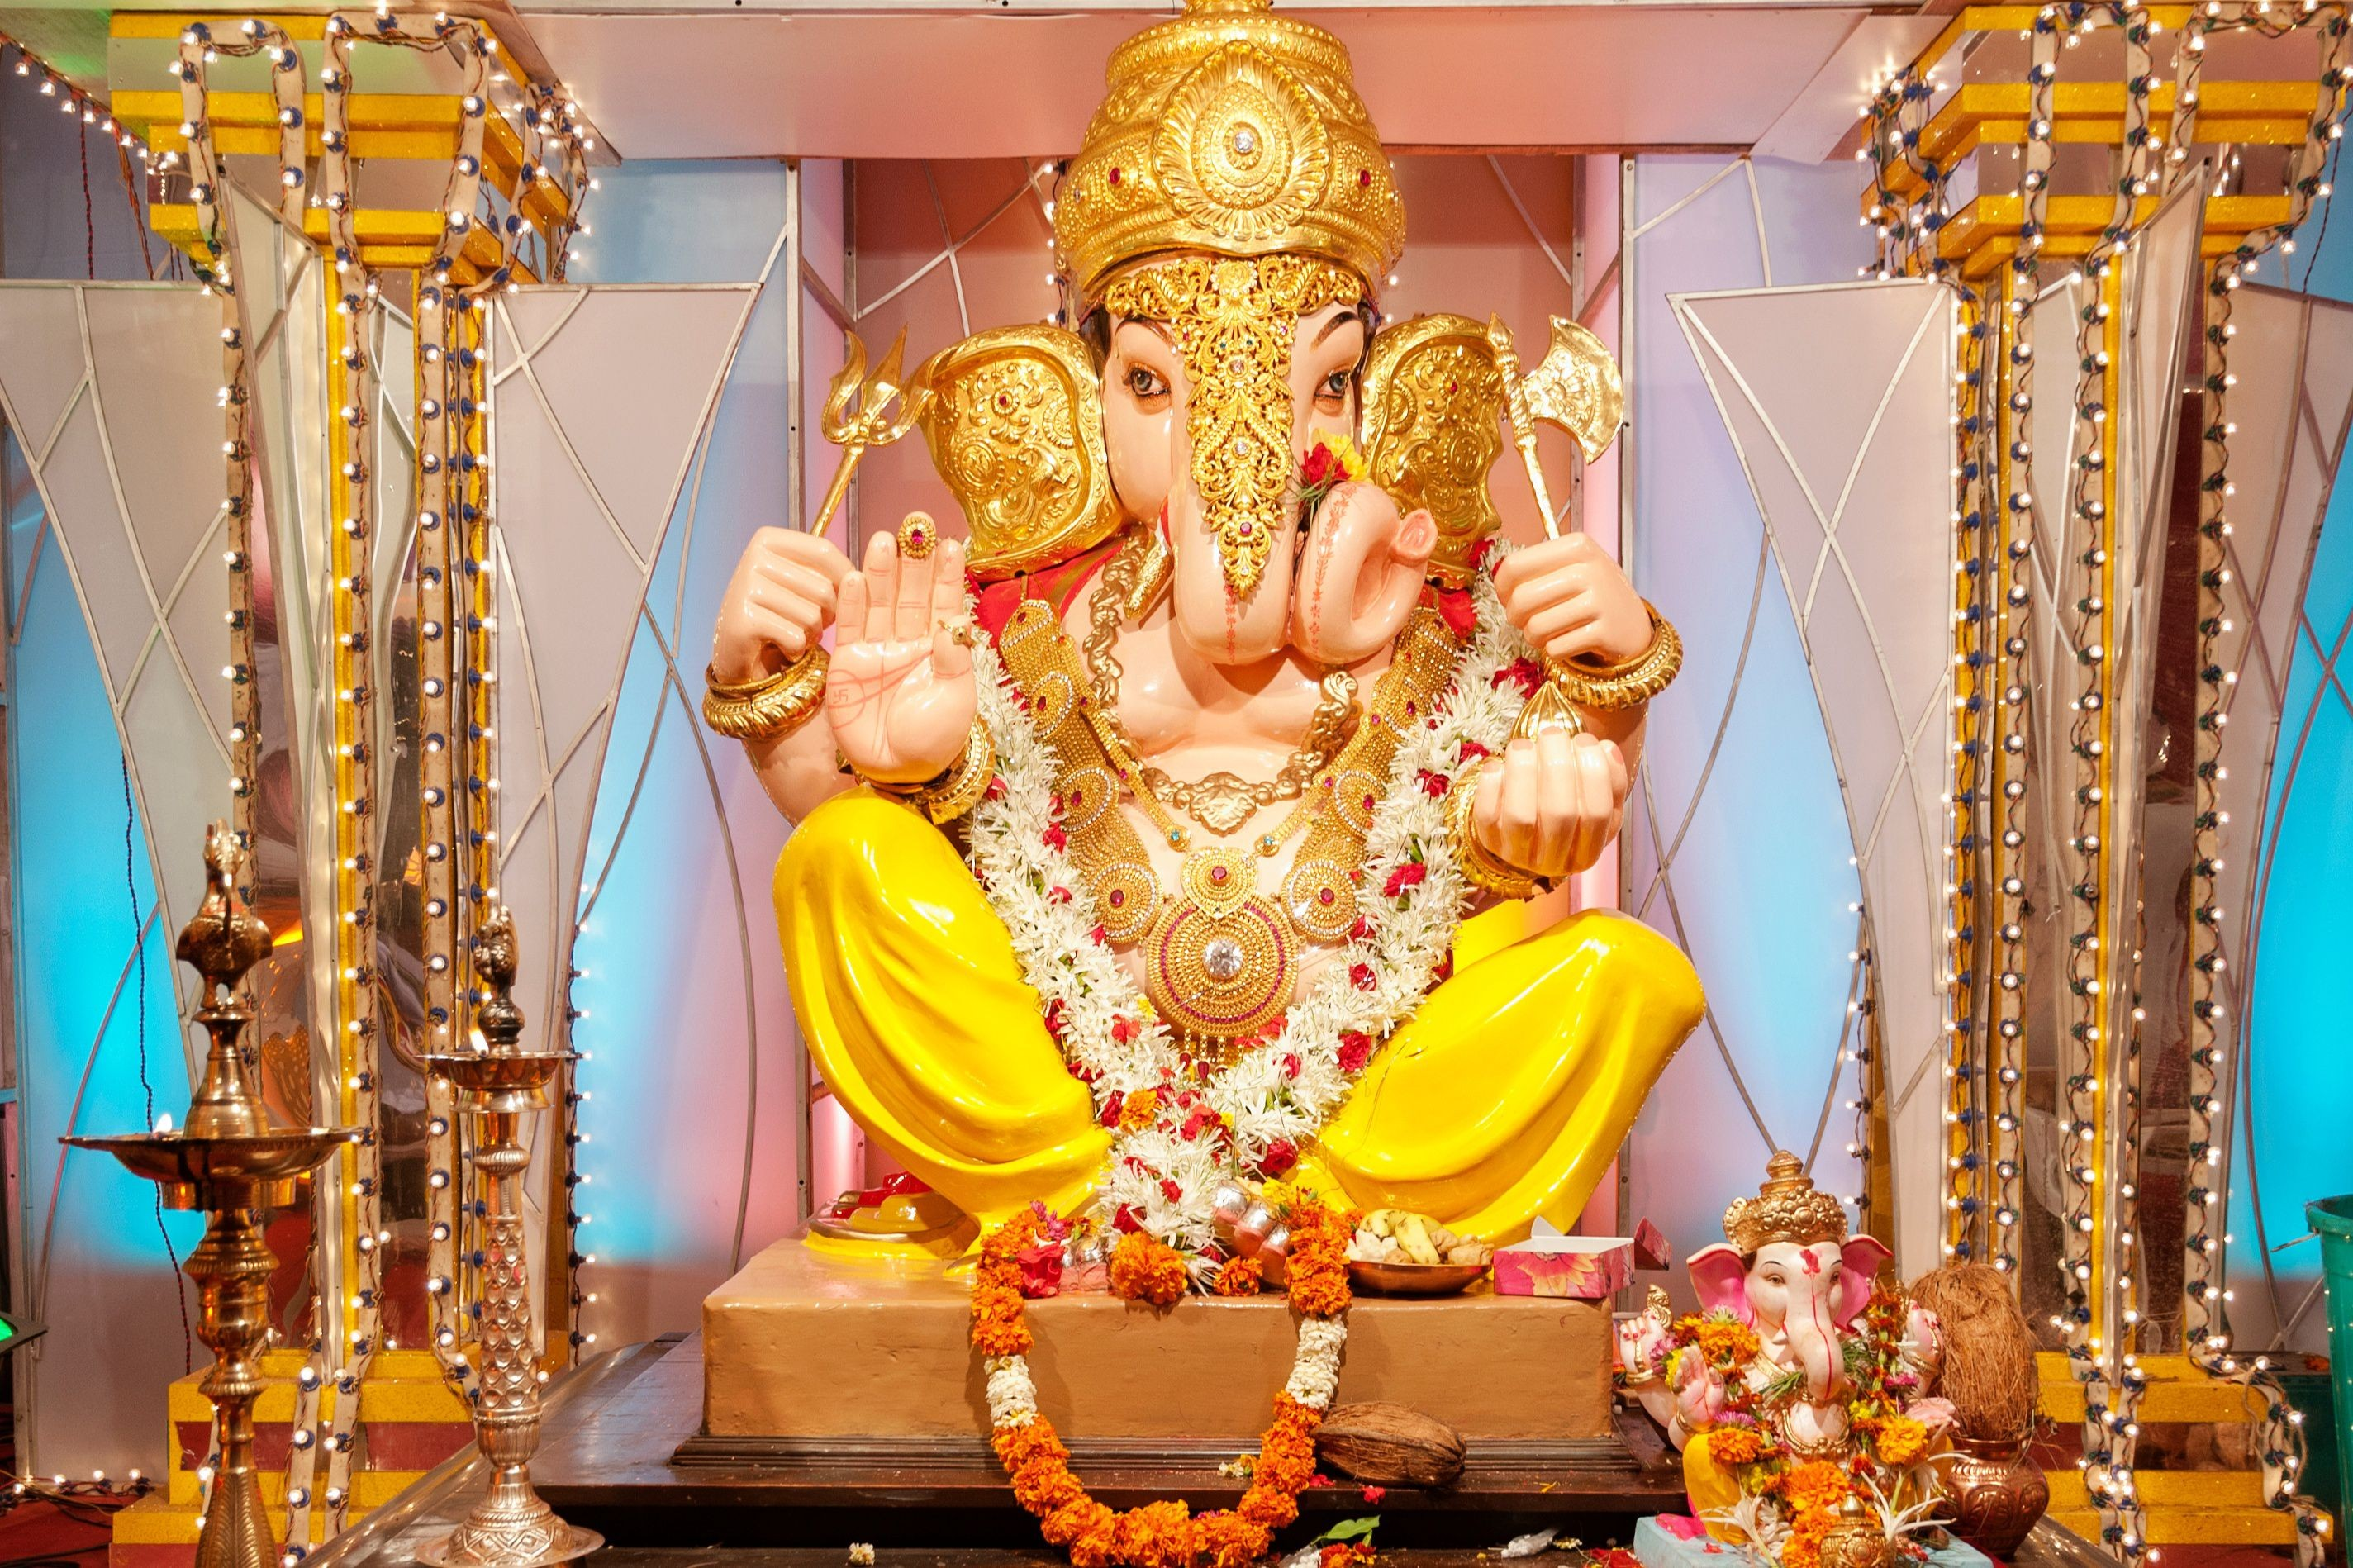 Gujarati Calendar March 2018 Más Arriba-a-fecha when is Ganesh Chaturthi In 2019 2020 and 2021 Of Gujarati Calendar March 2018 Recientes Central Institute Of Fisheries Technology Icar Cift